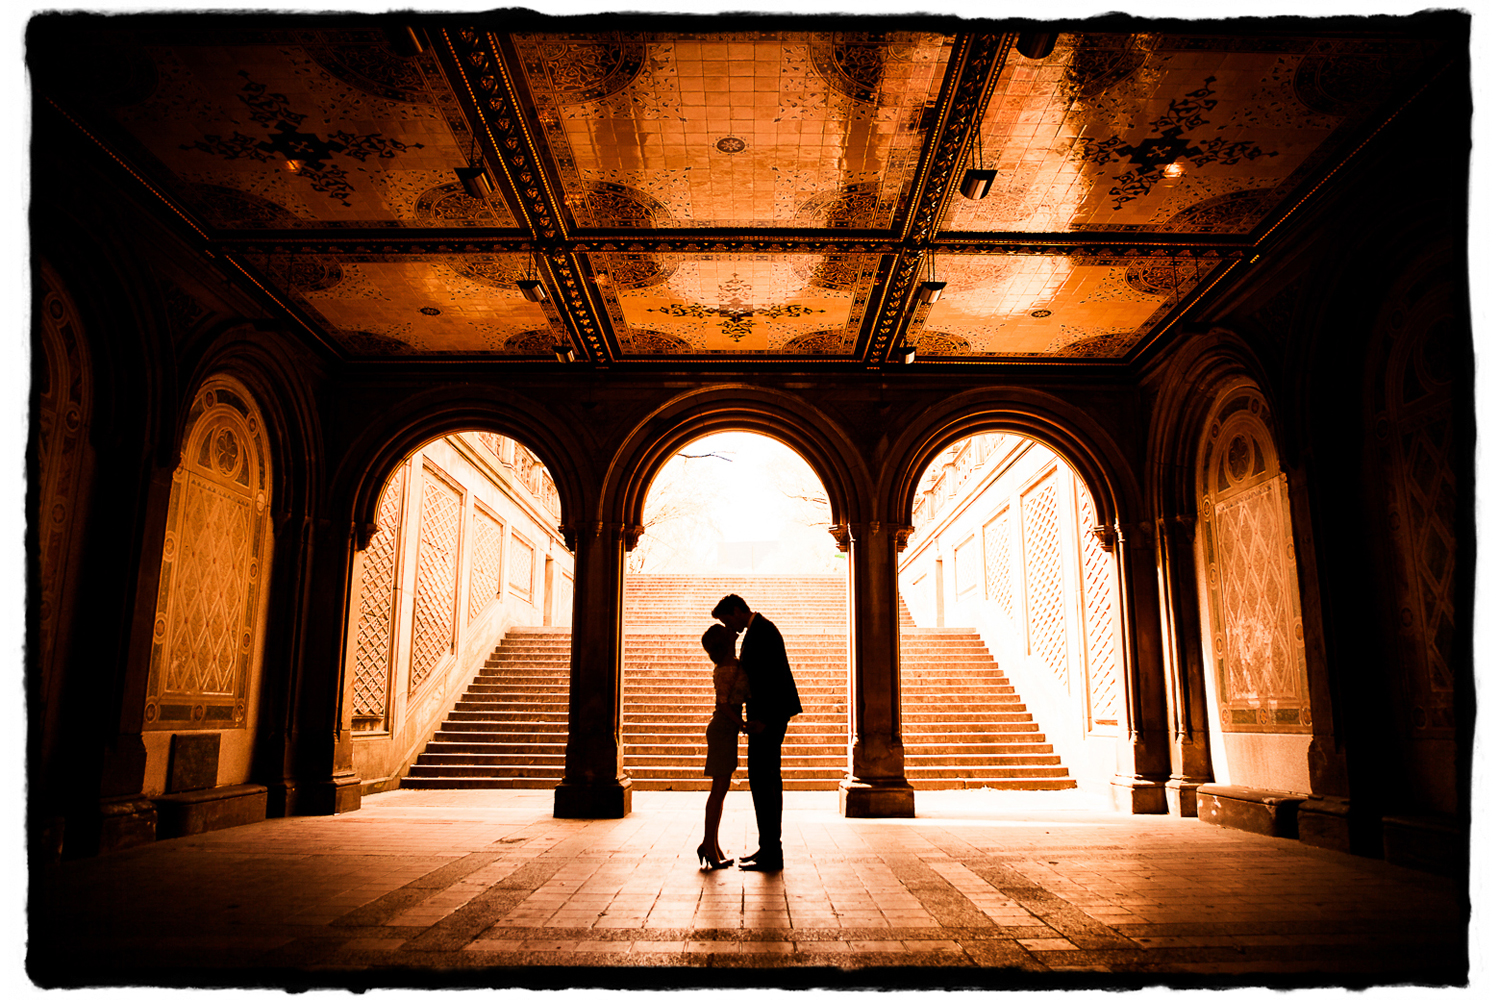 This german couple flew to New York City to elope and celebrate with a honeymoon vacation all at once.  I was able to capture this sweet moment alone under the arches between the Bethesda Fountain and the Mall in Central Park shortly after their intimate ceremony under a gazebo nearby.